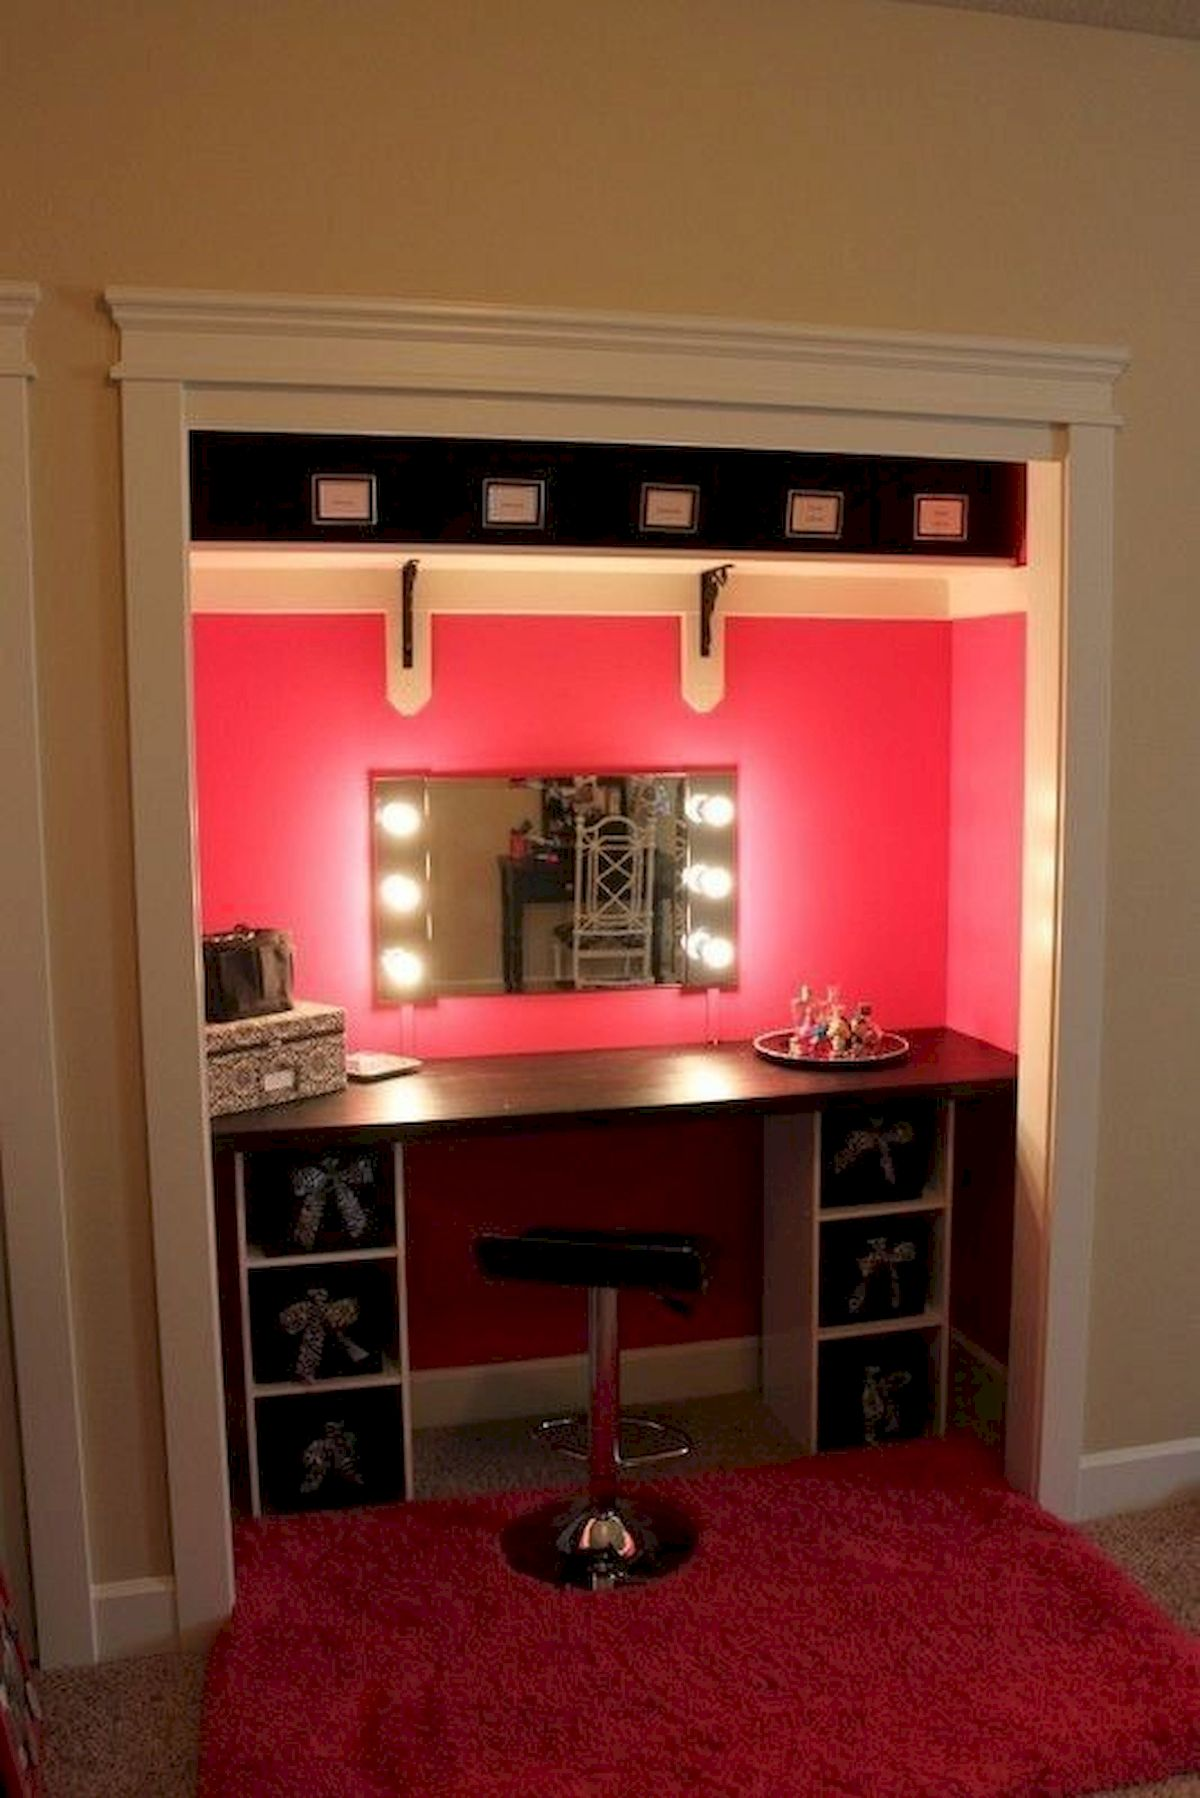 40 Beautiful Make Up Room Ideas in Your Bedroom (17)